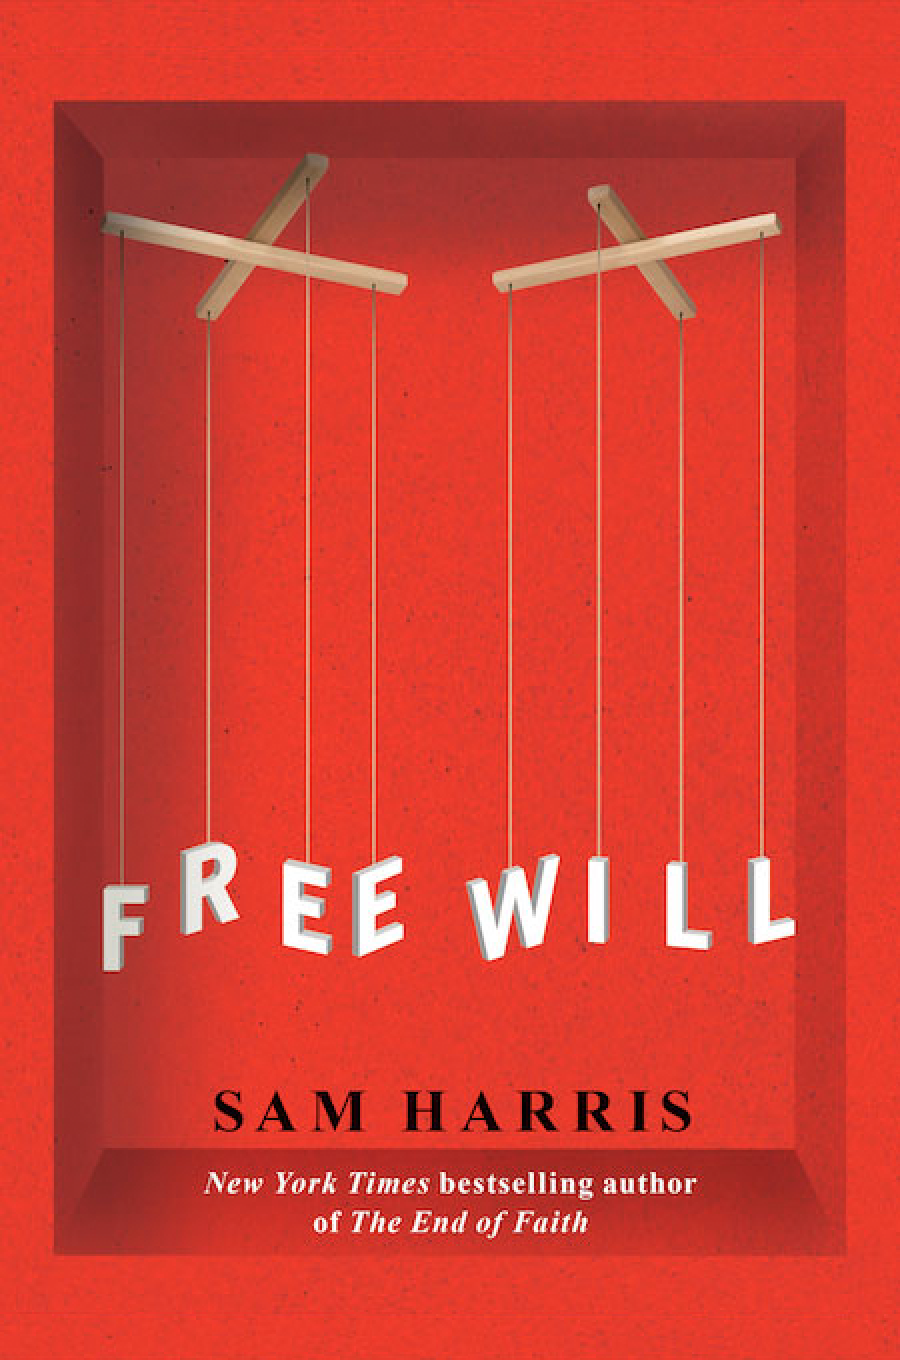 Free Will by Sam Harris - Rating:8/10Completed: 21/01/2017The only reason this didn't get a higher rating is because of the complexity of the topics it talks about. I found it hard to understand some of the concepts. I'll have to listen to/read it again to gather a further understanding.Key Takeaway(s):The decisions you make may not entirely be your own, no matter how much you believe they are.Amazon: Free Will by Sam Harris